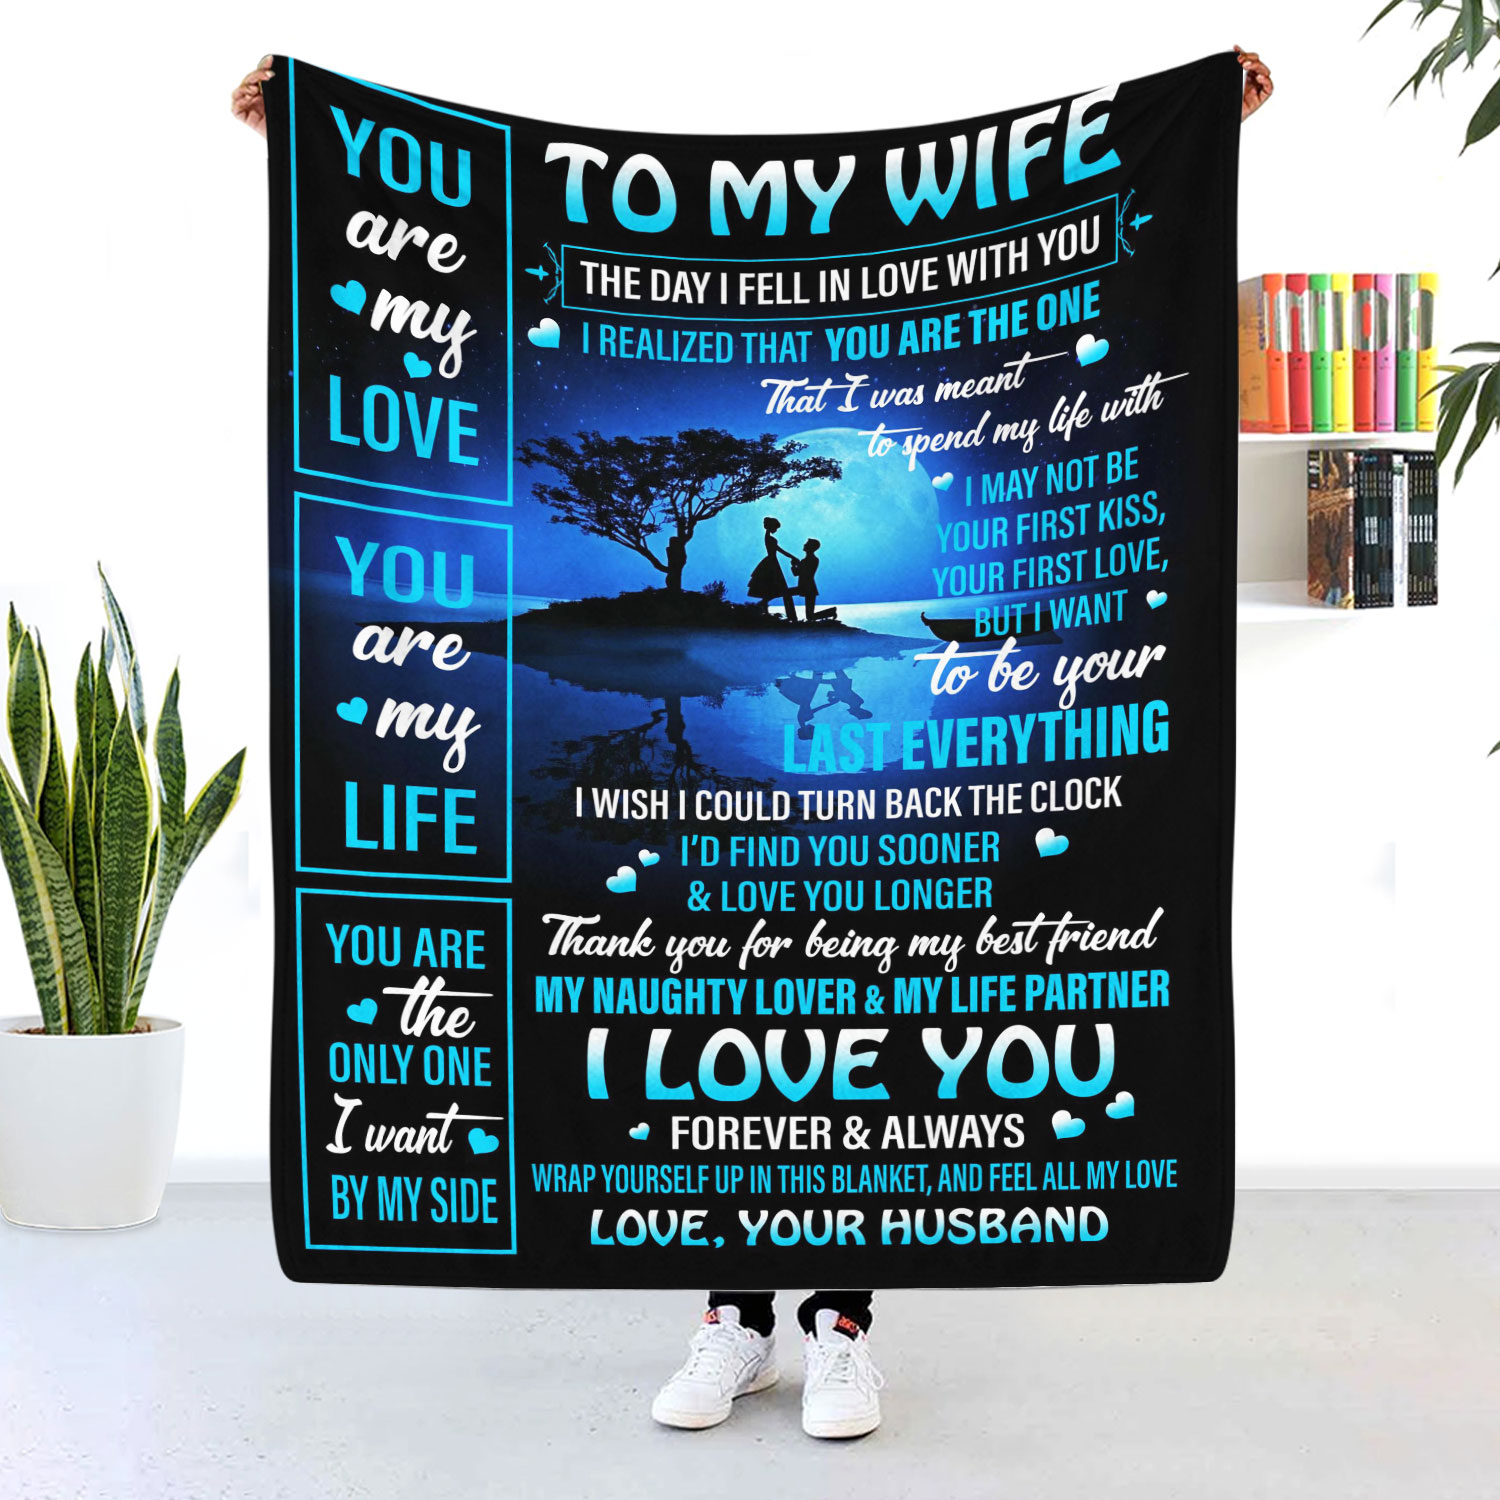 To My Wife I Love You Forever And Always Blanket